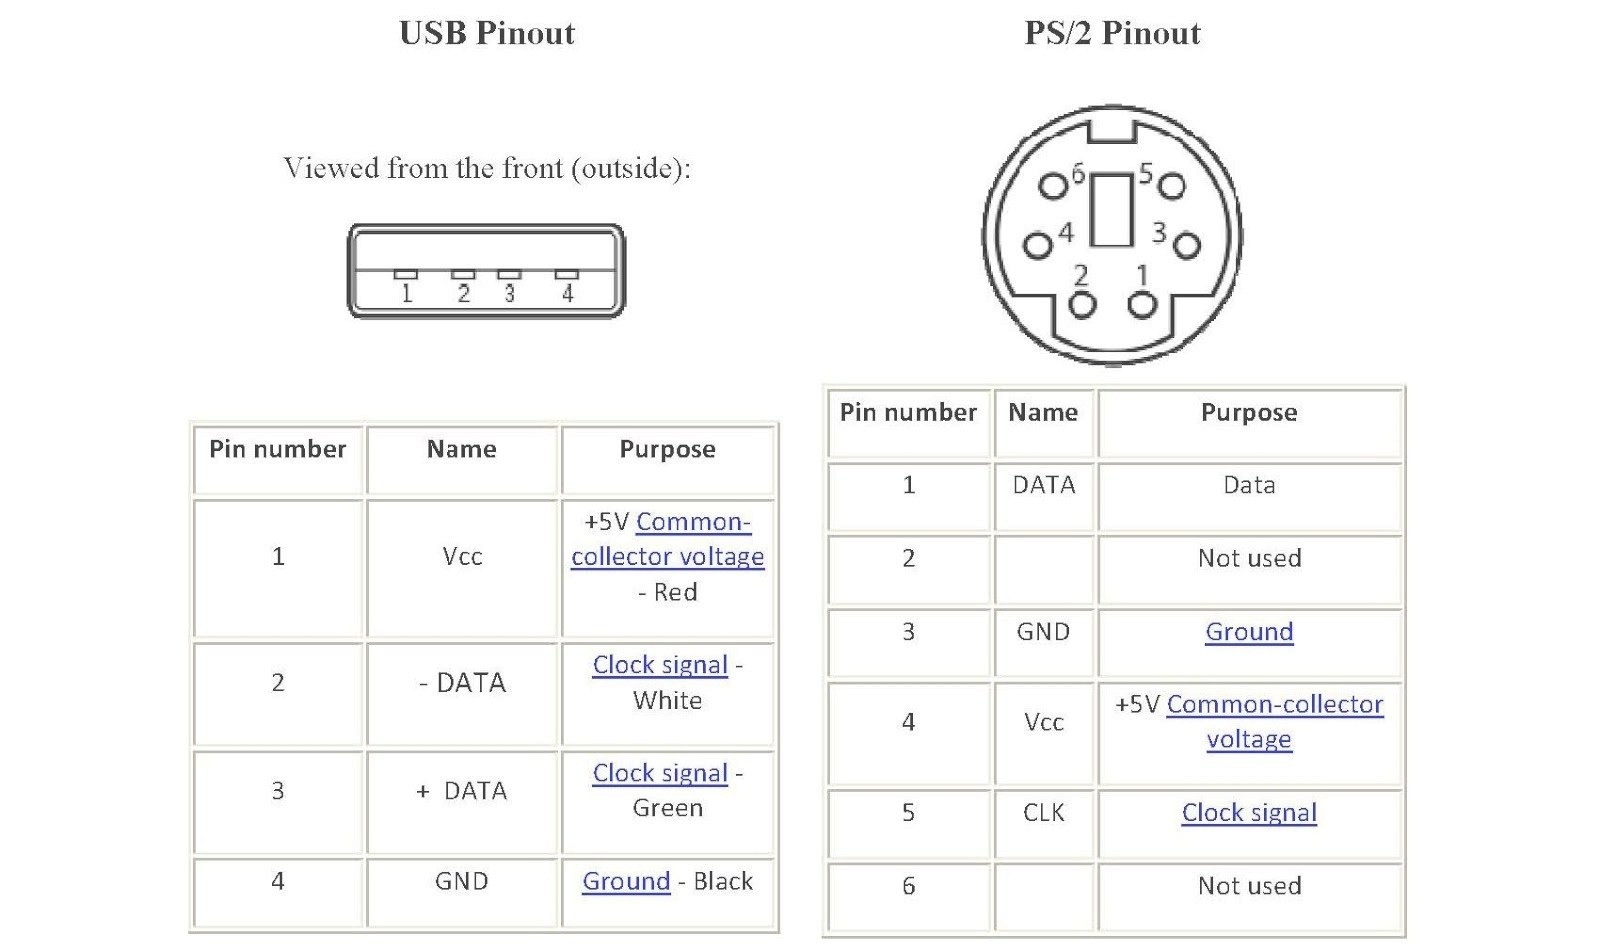 Ps2 Usb Wiring Diagram   Manual E-Books - Ps2 Mouse To Usb Wiring Diagram -Power